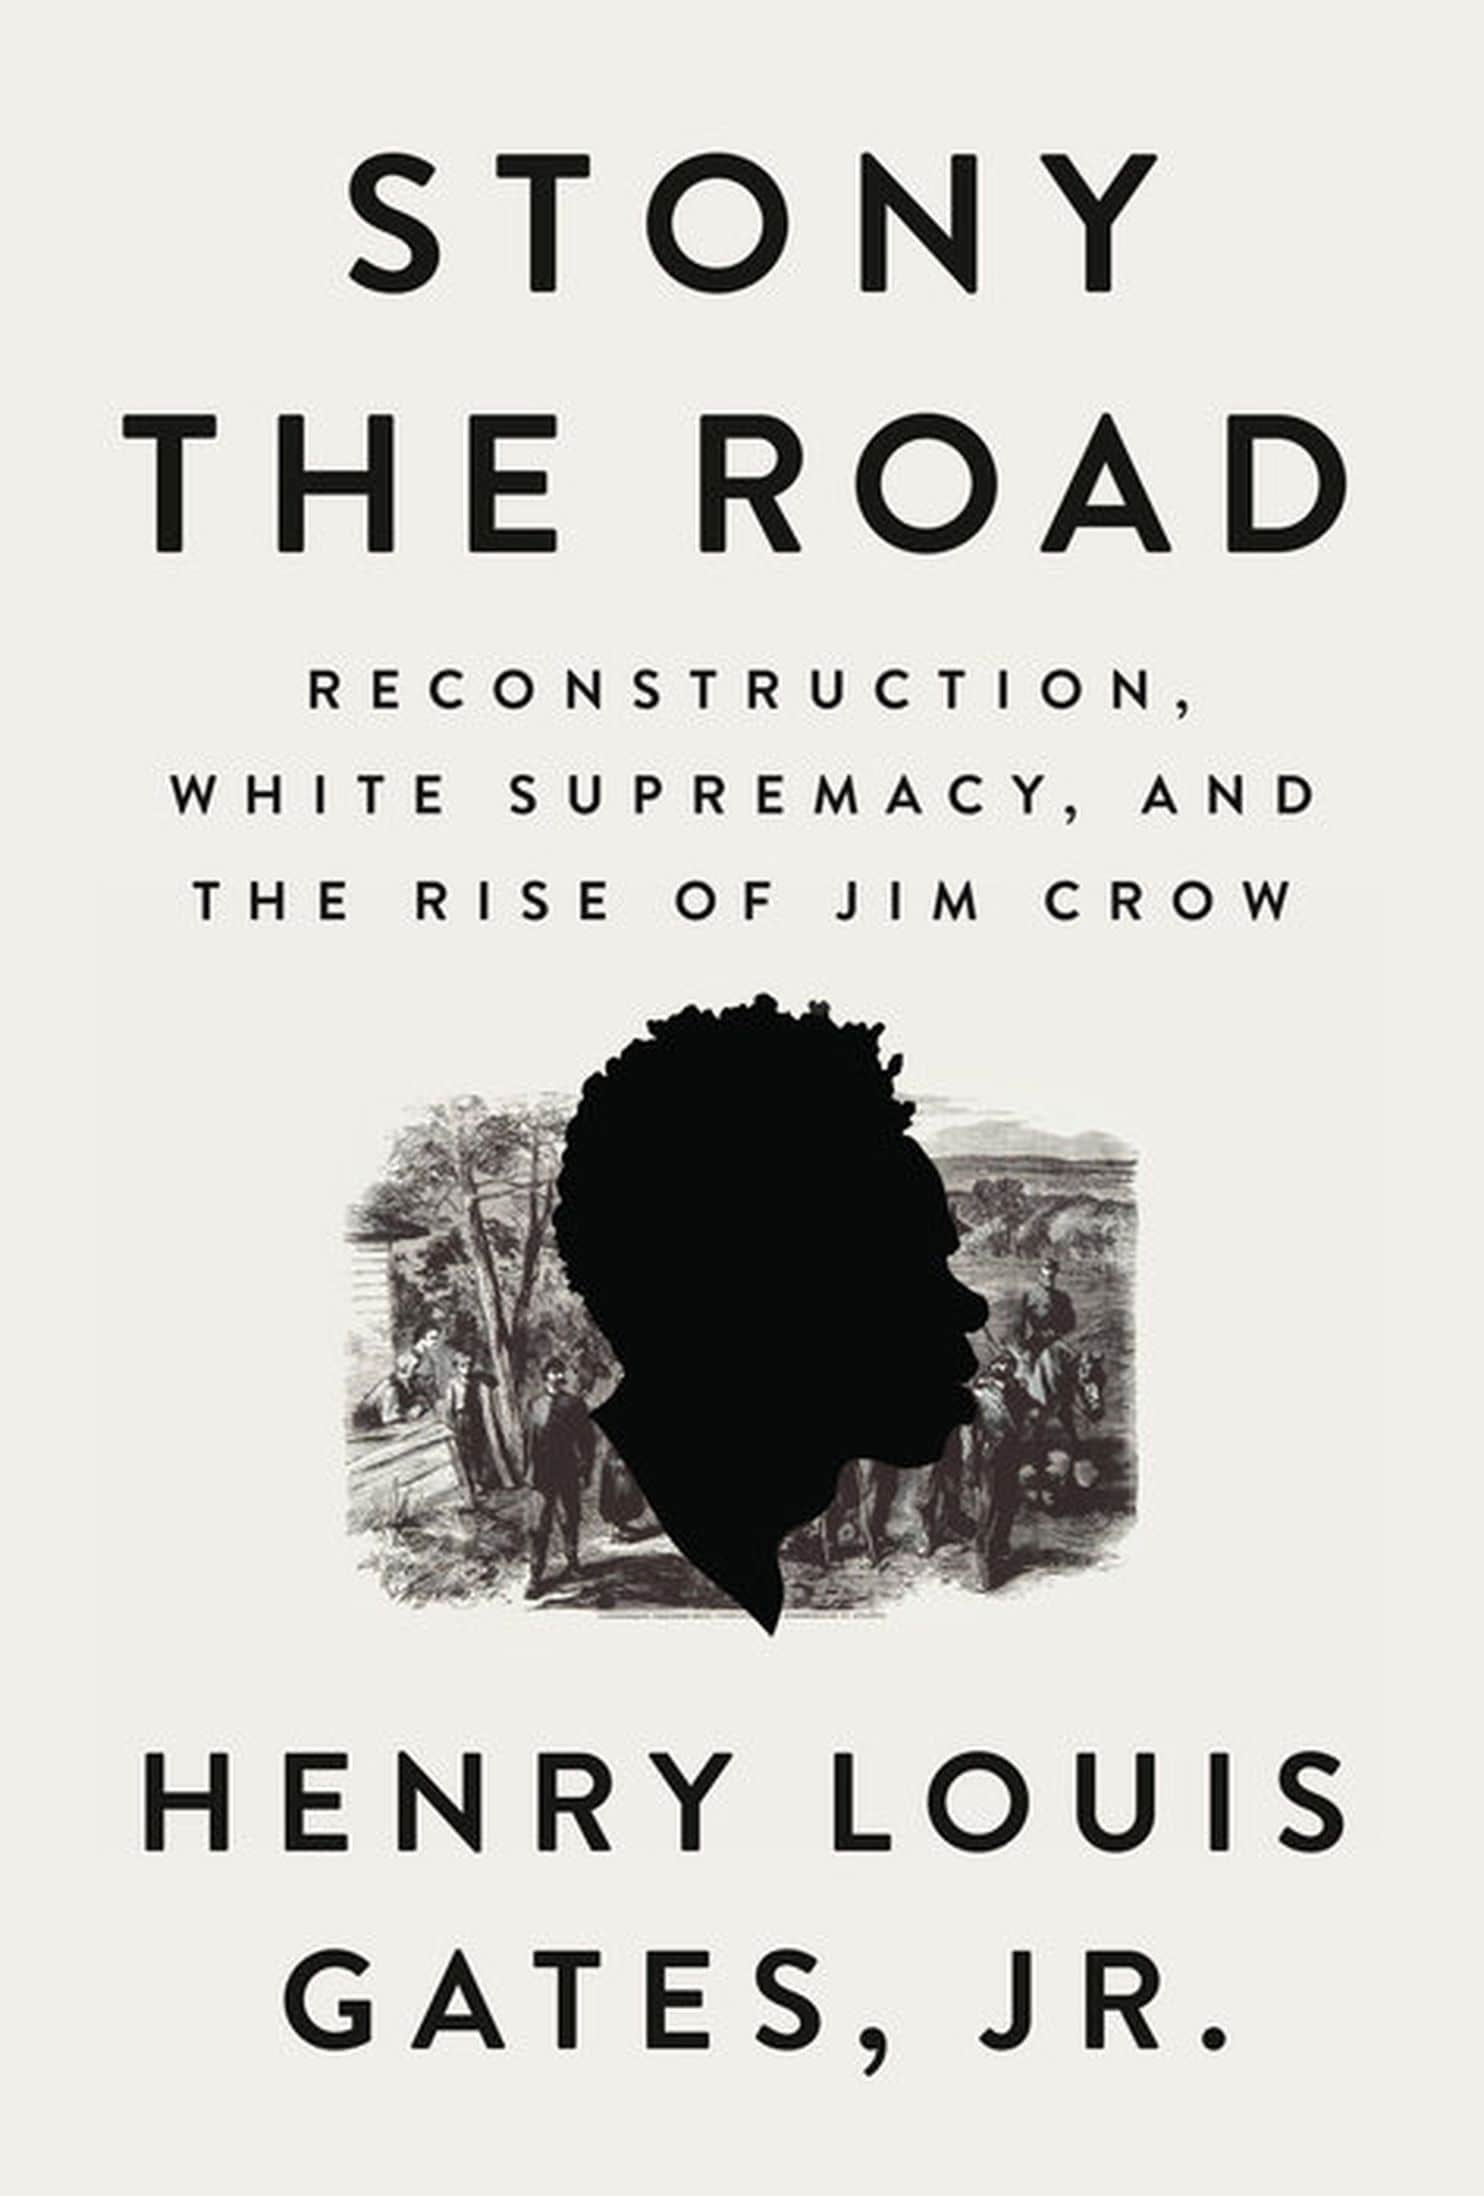 Book Review Of Stony The Road Reconstruction White Supremacy And The Rise Of Jim Crow By